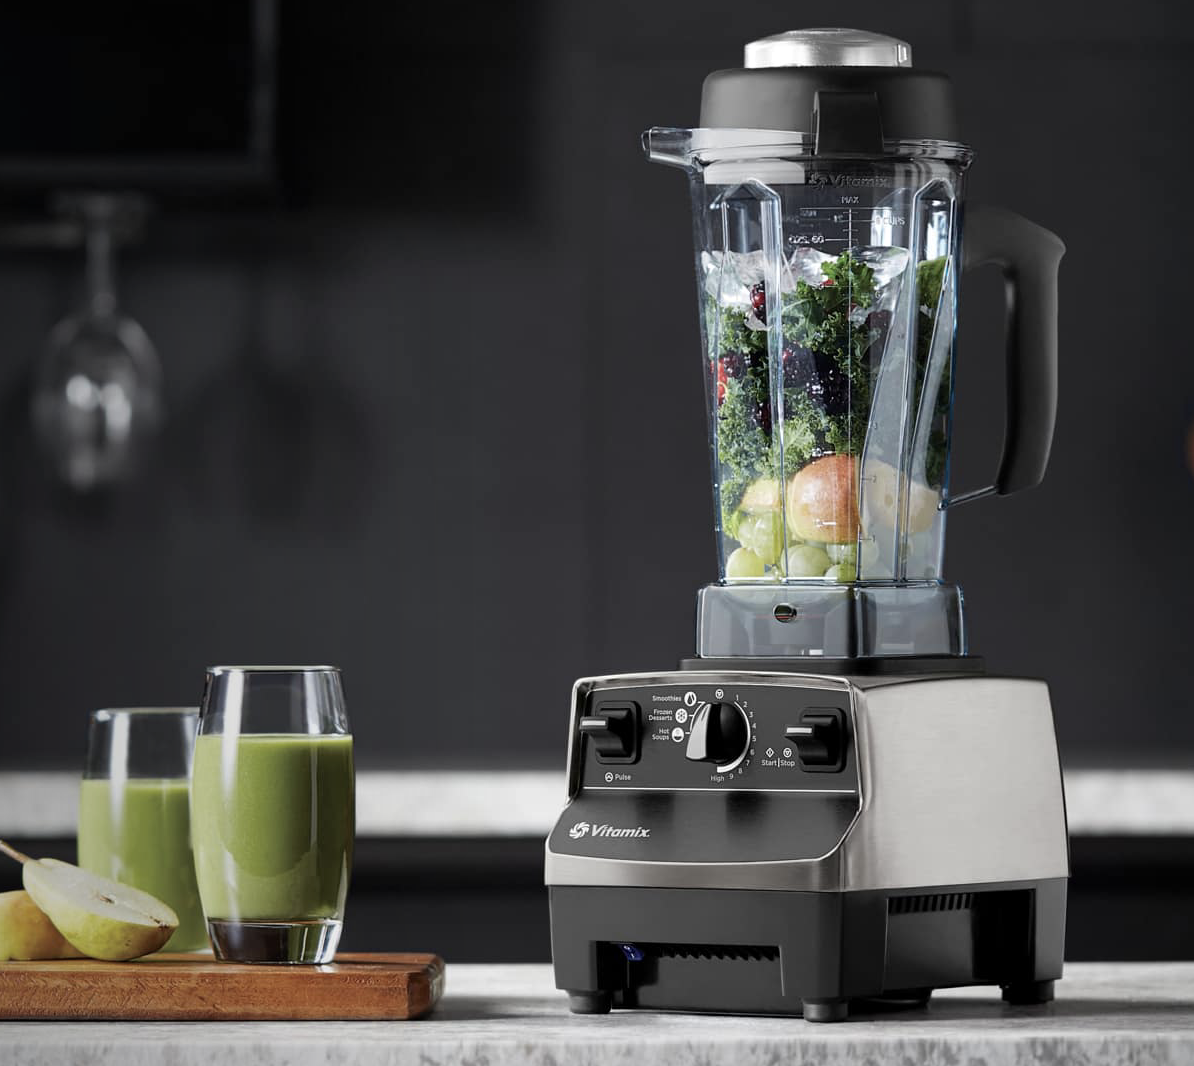 For Vitamix Products, please click here. - (Note these are affiliate links, thanks for your support!)